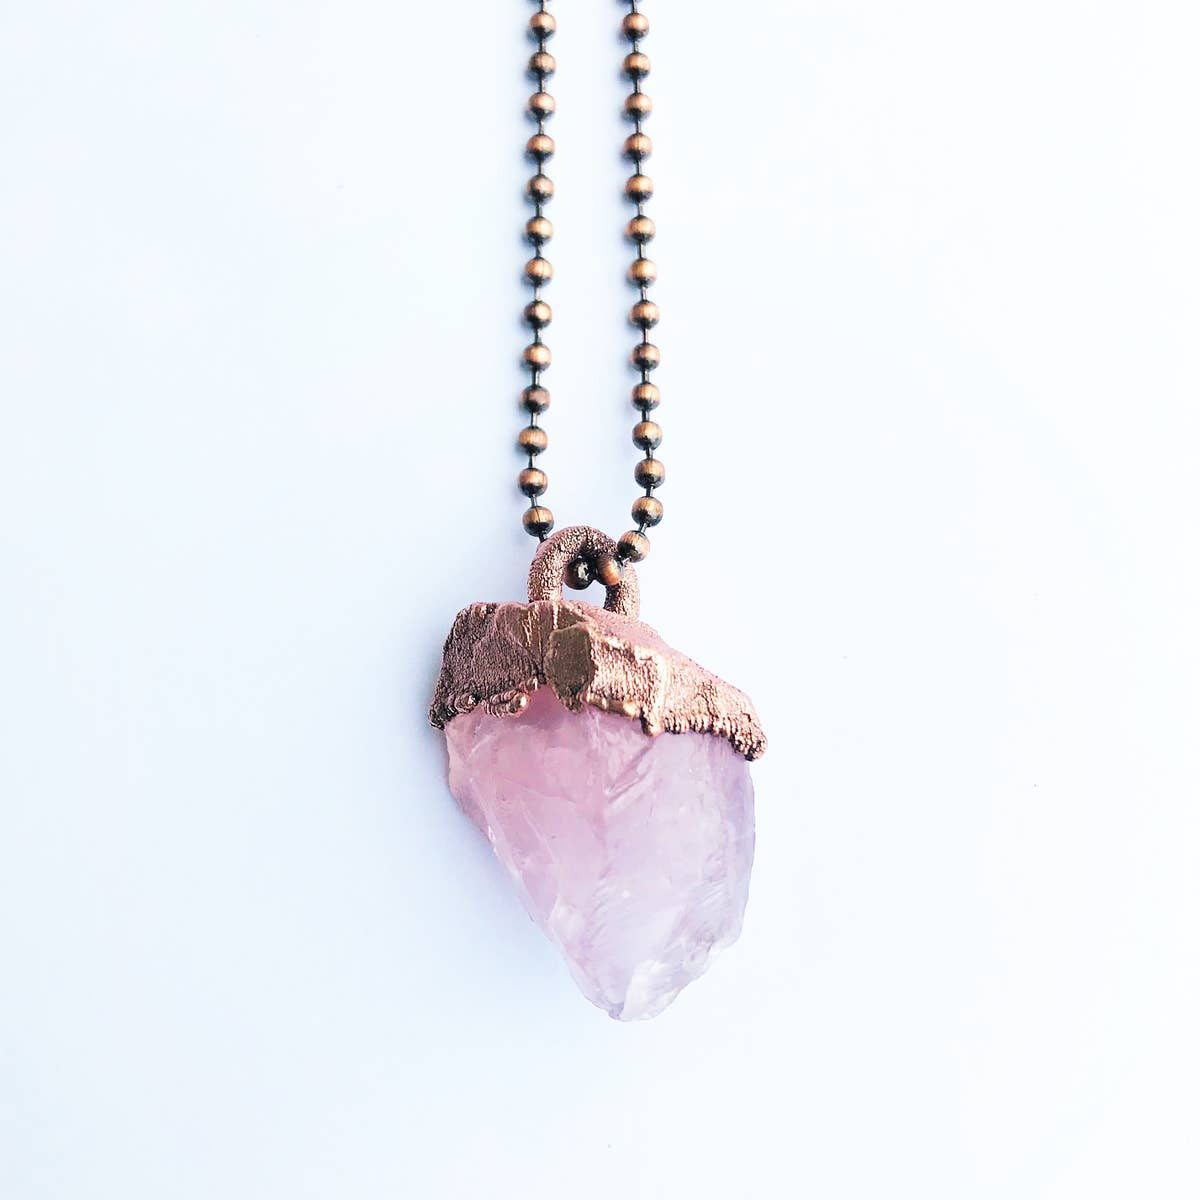 Raw Rose Quartz Crystal Necklace